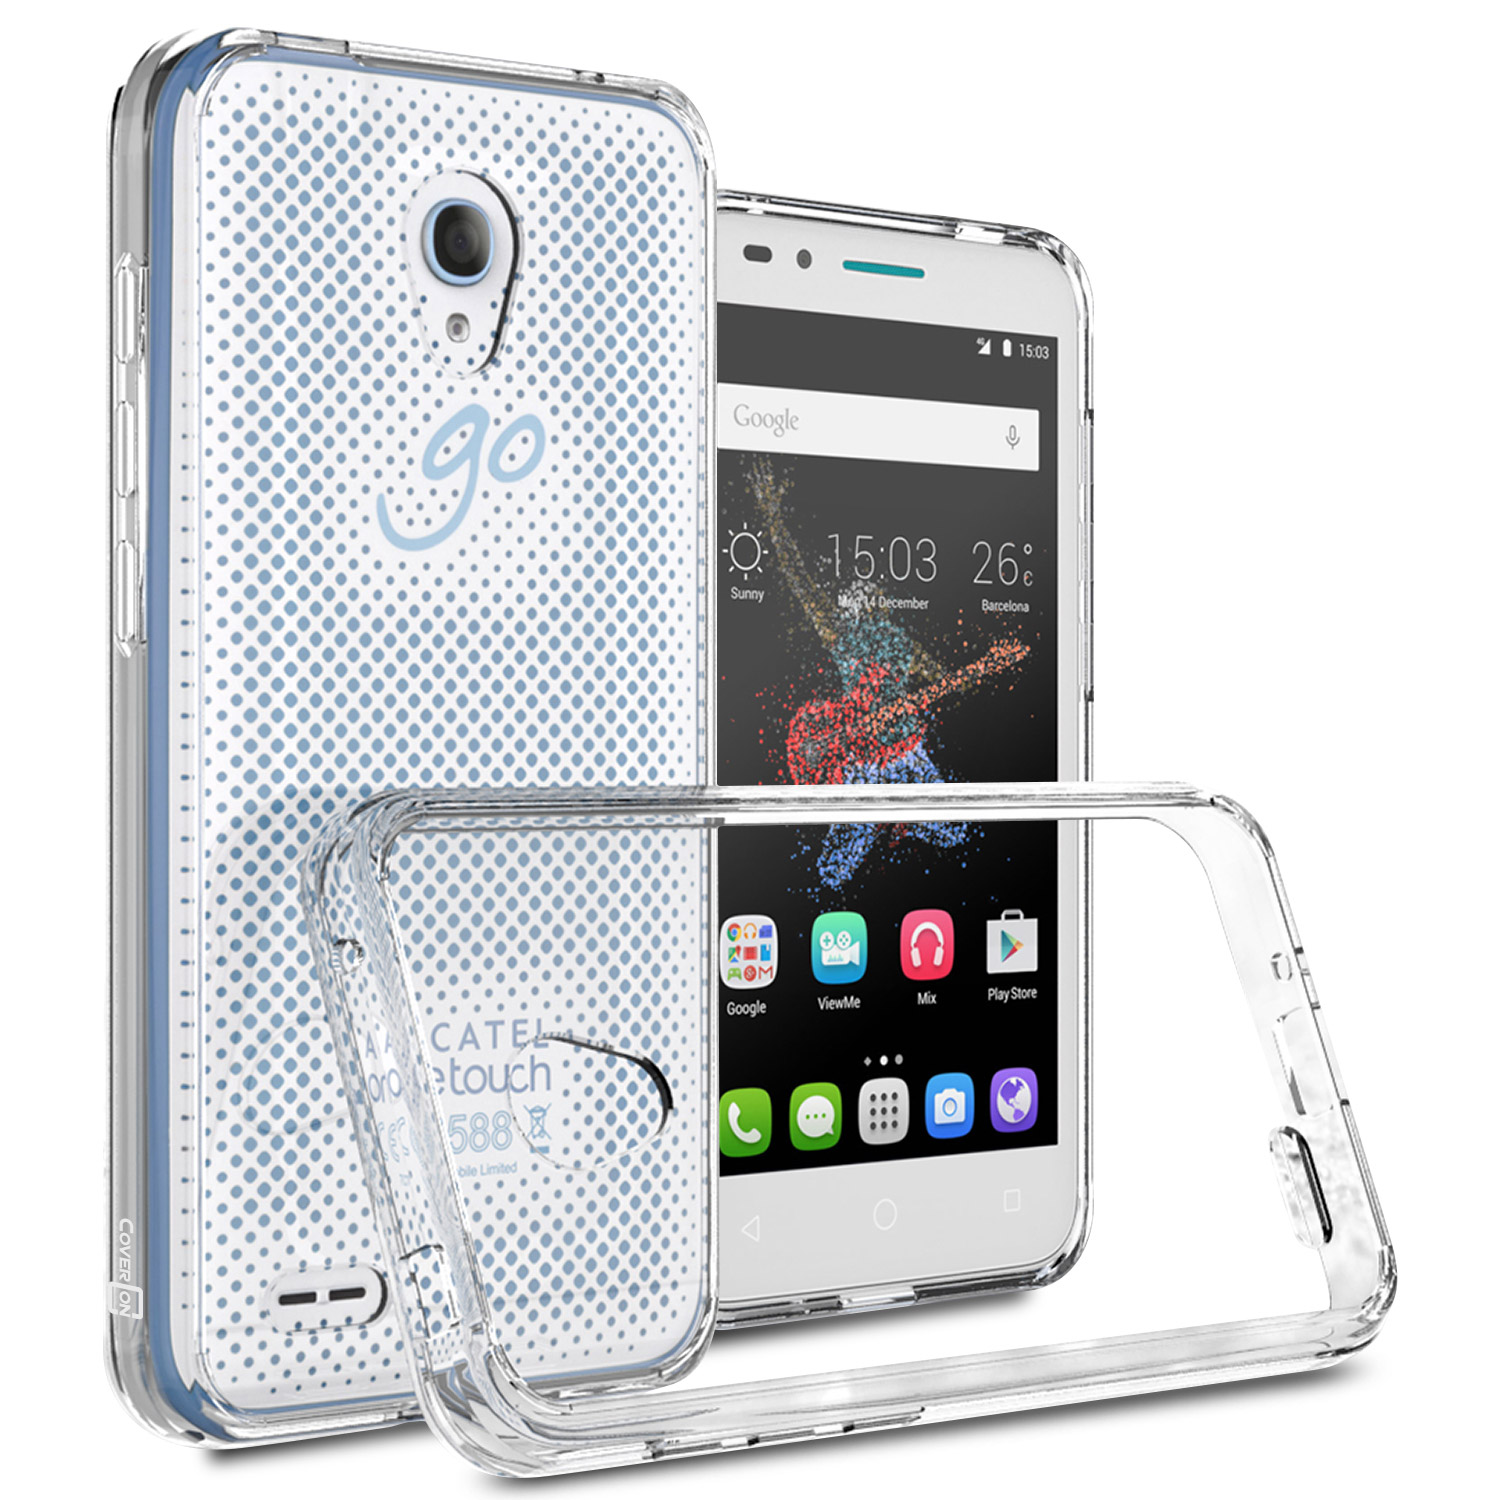 watch e0b35 4e866 Details about Clear TPU Bumper Hard Back Cover Case for ALCATEL One Touch  Go Play Conquest